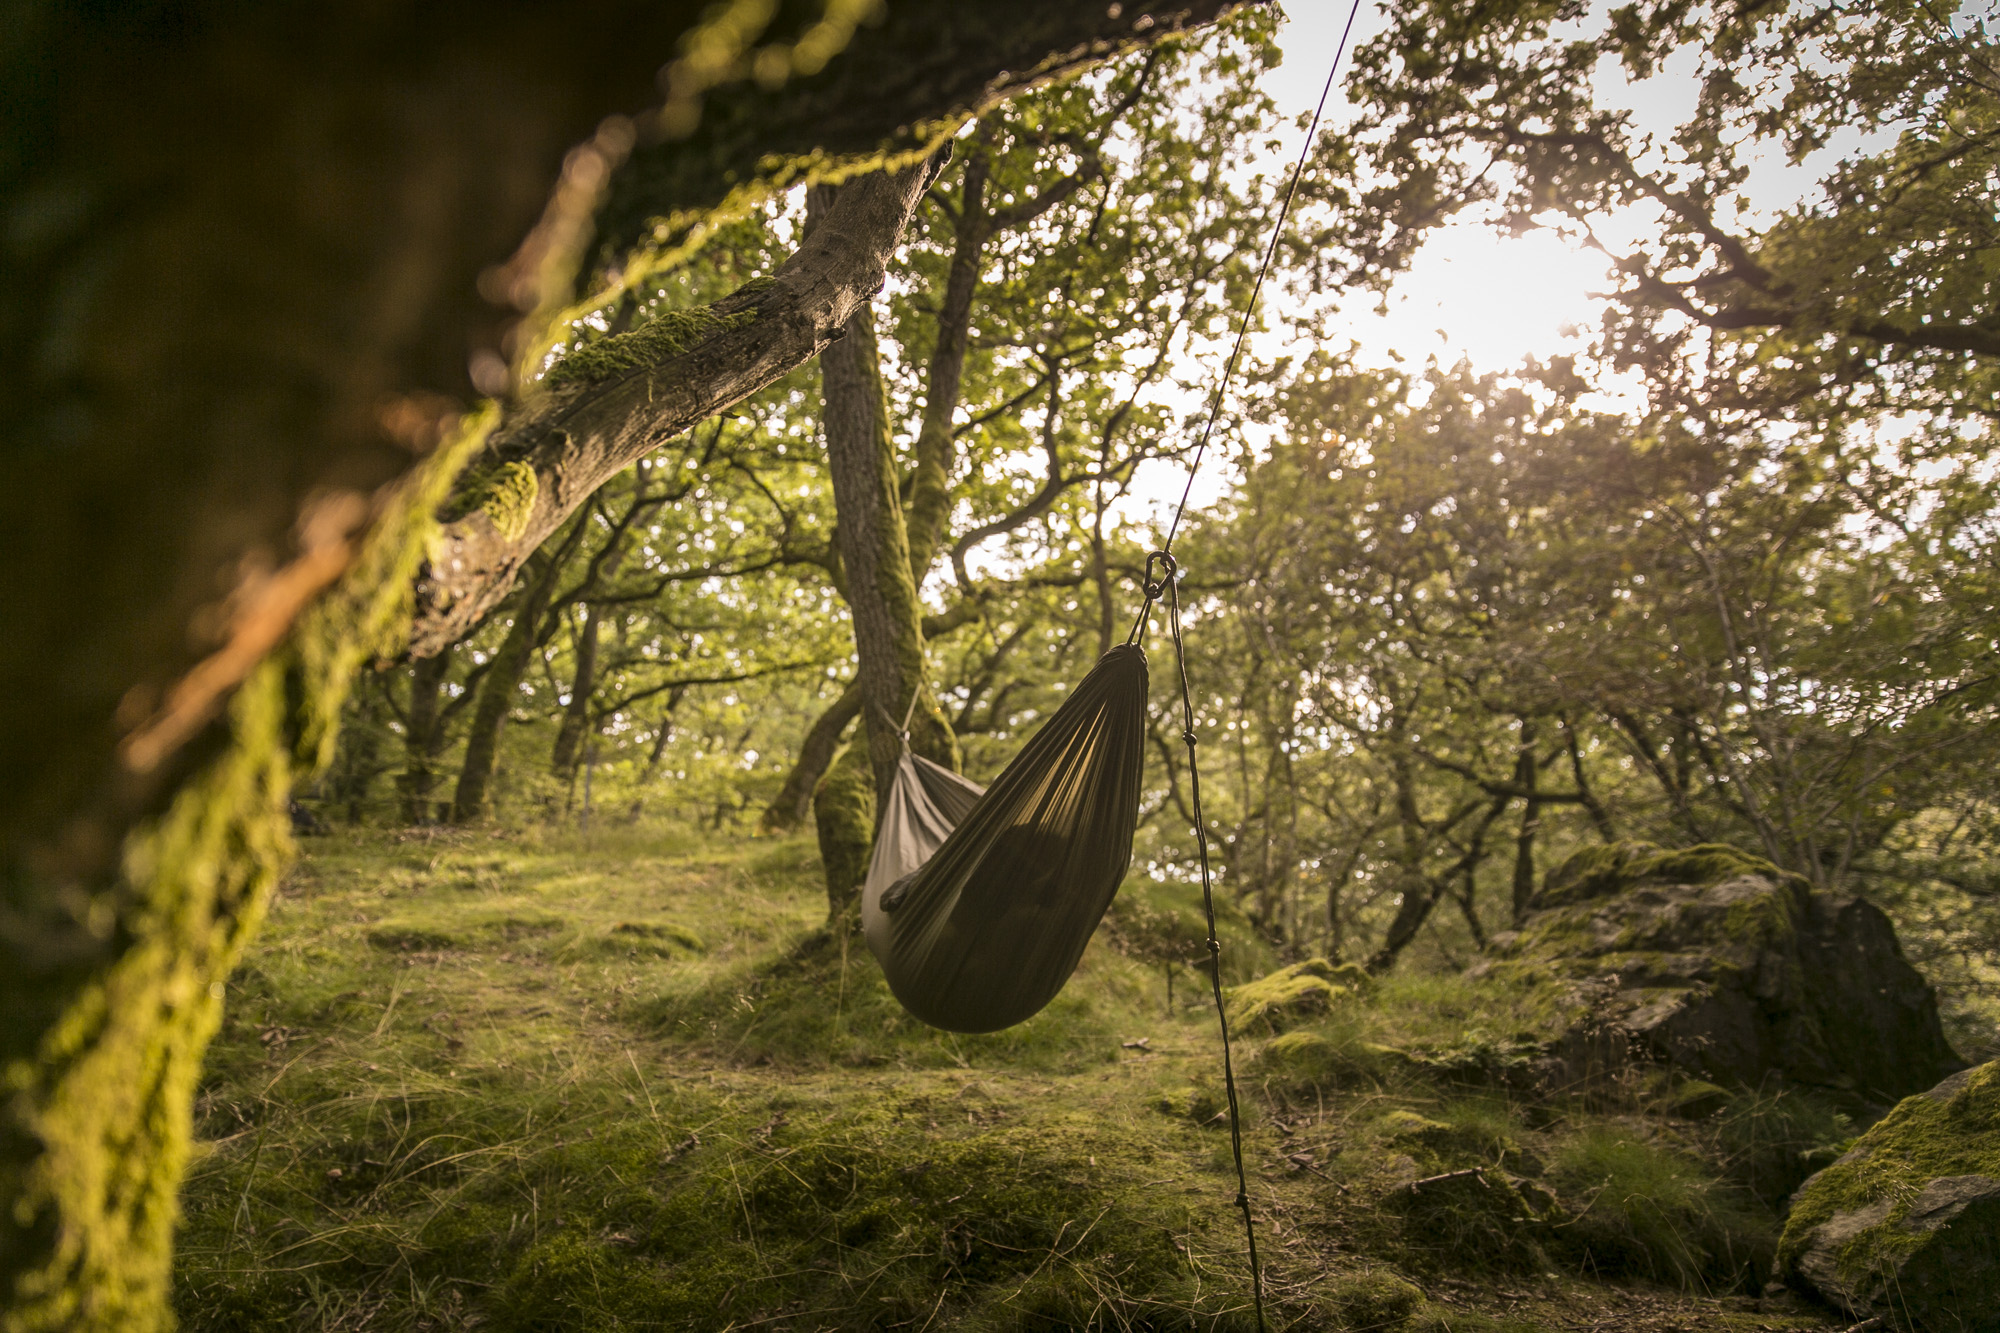 snugpak-jungle-hammock-19